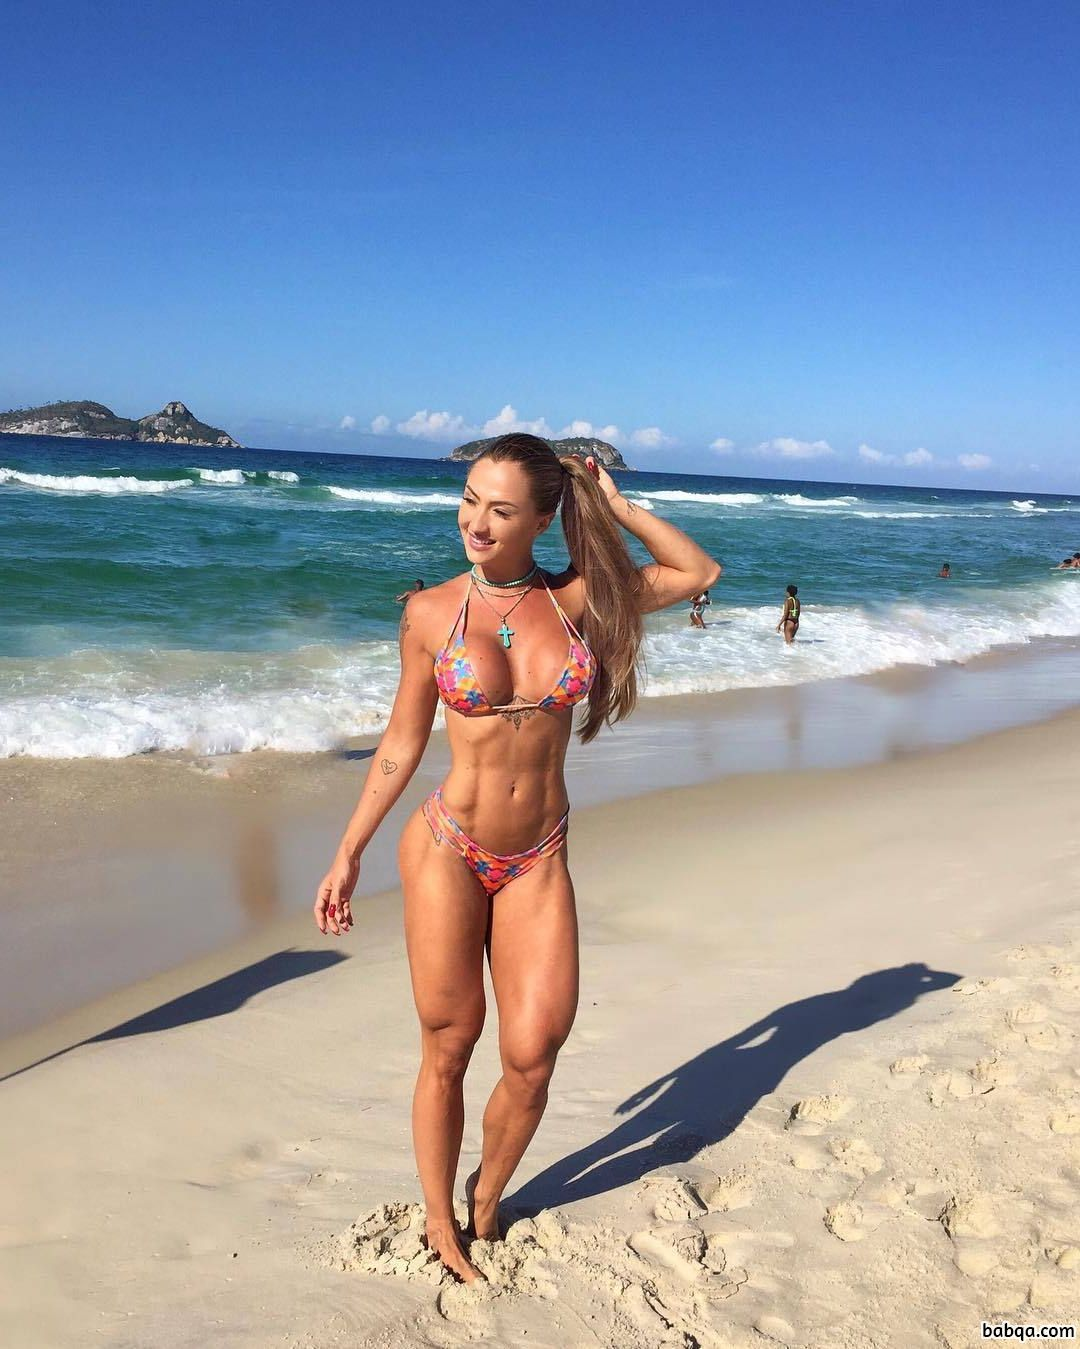 real sexy women repost from womenfitnessmodels – hot girls pic download